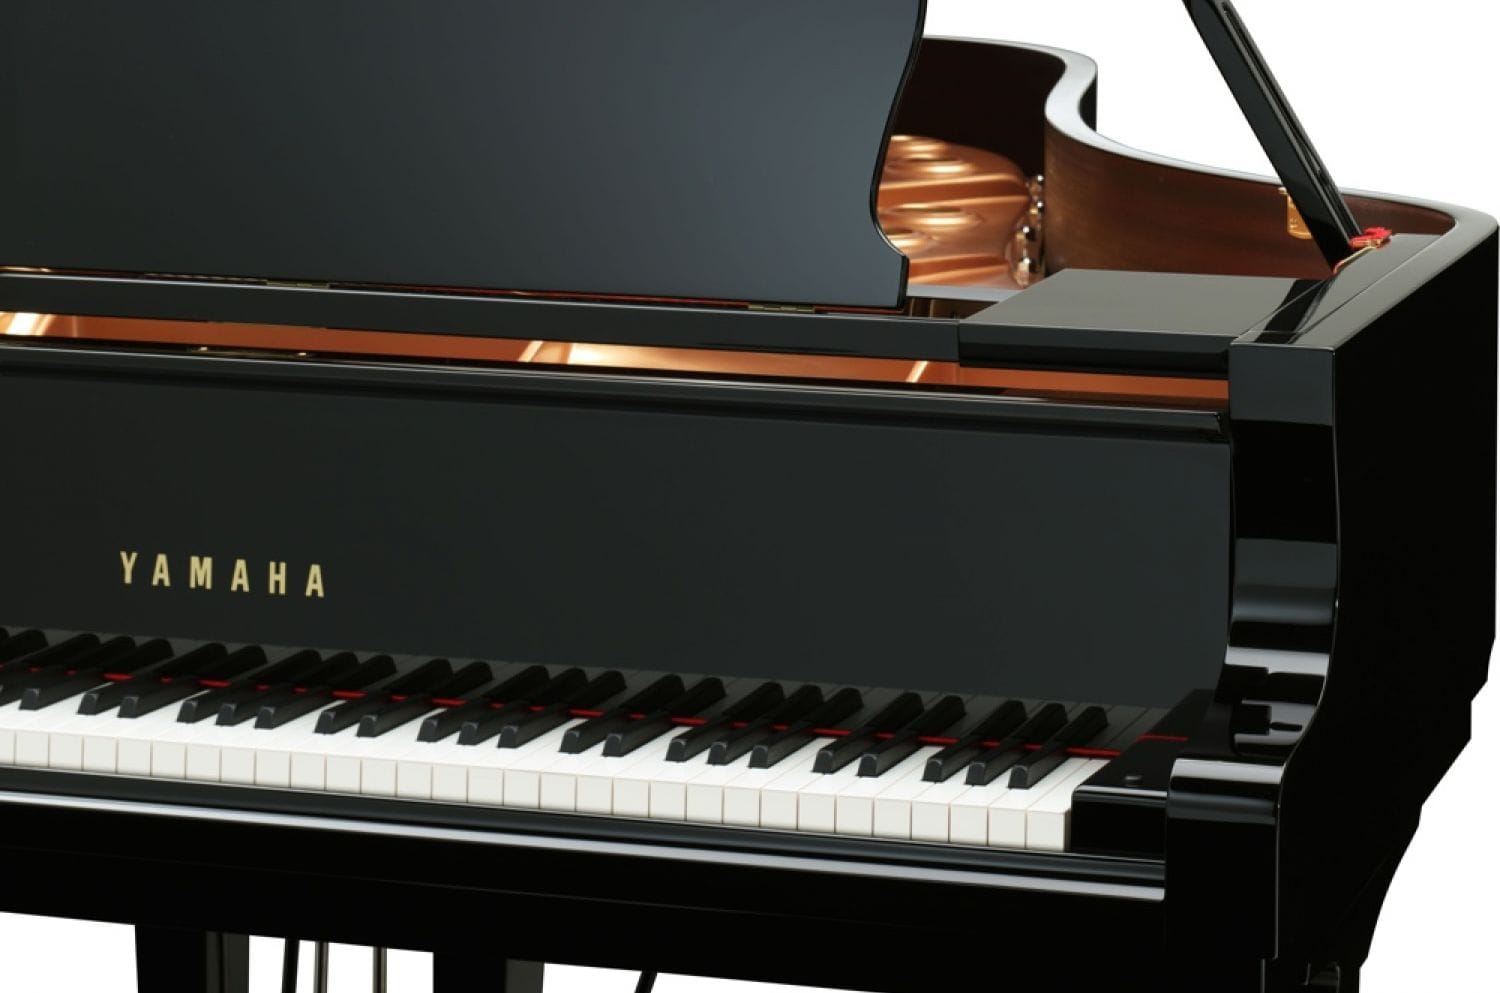 A view of a Yamaha grand piano's right side of the keyboard with lid open in background.